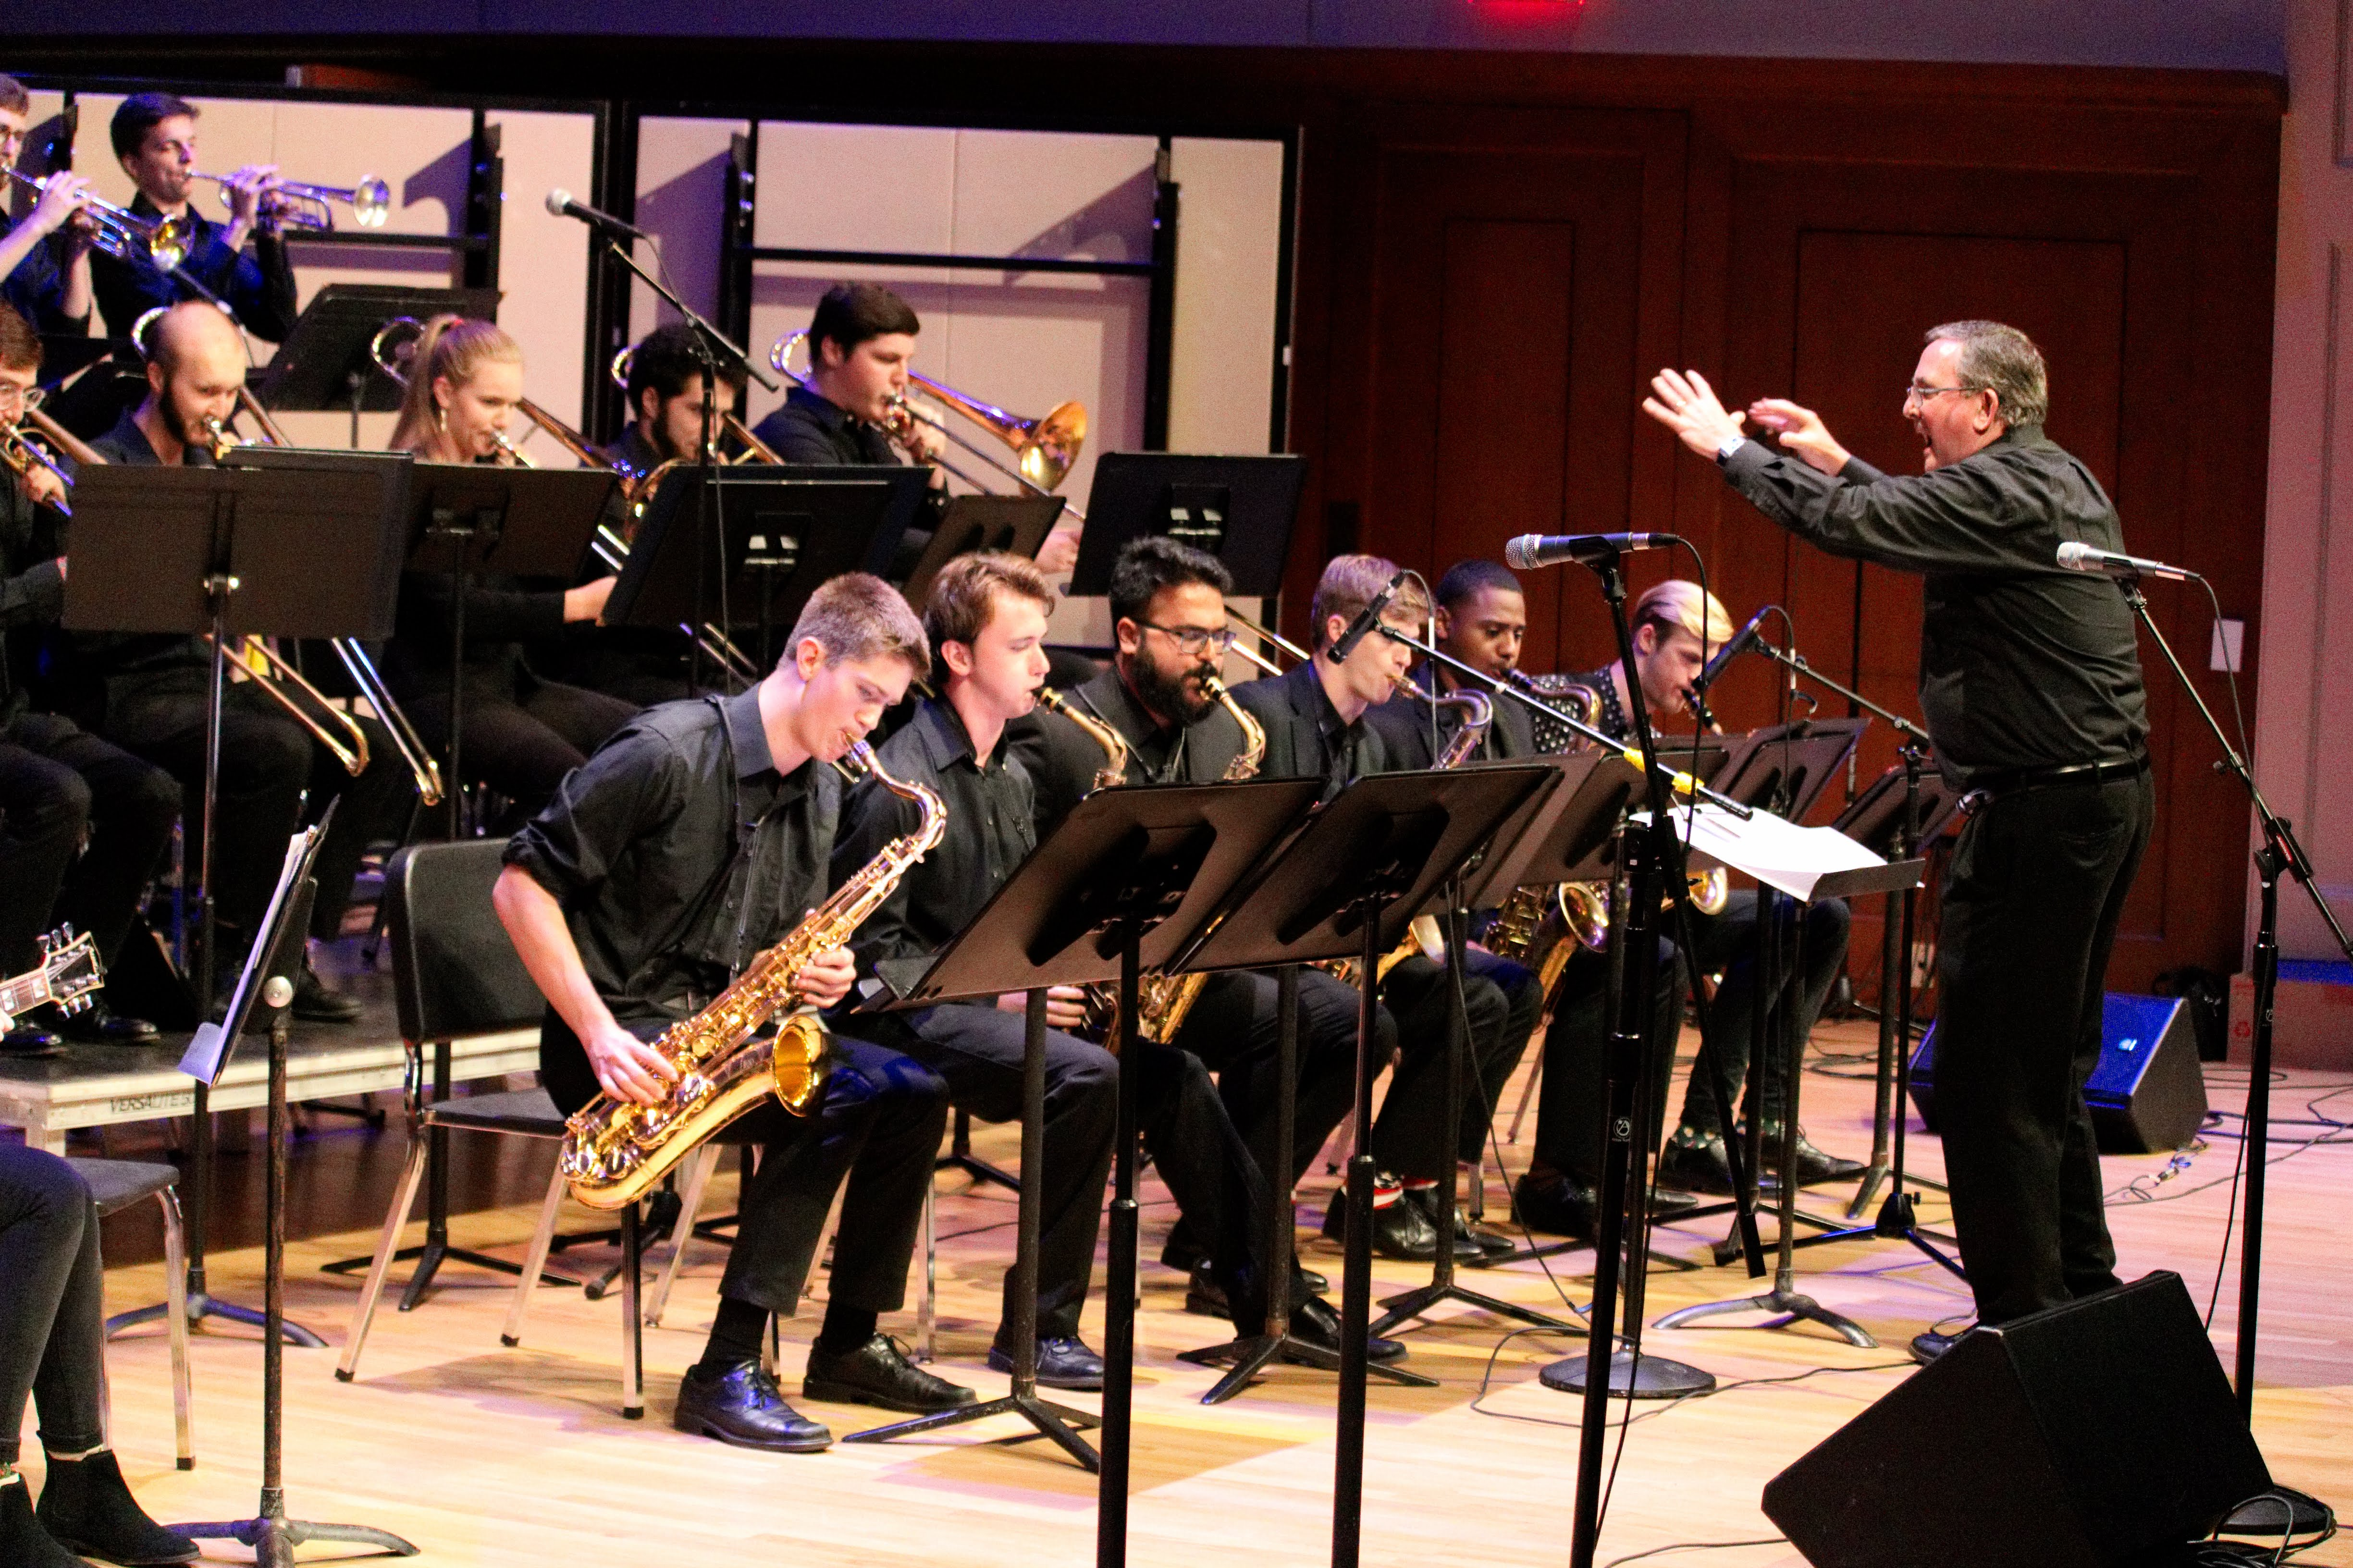 Jim Ketch conducts the Jazz Band with arms outstretched on Moeser Auditorium stage.